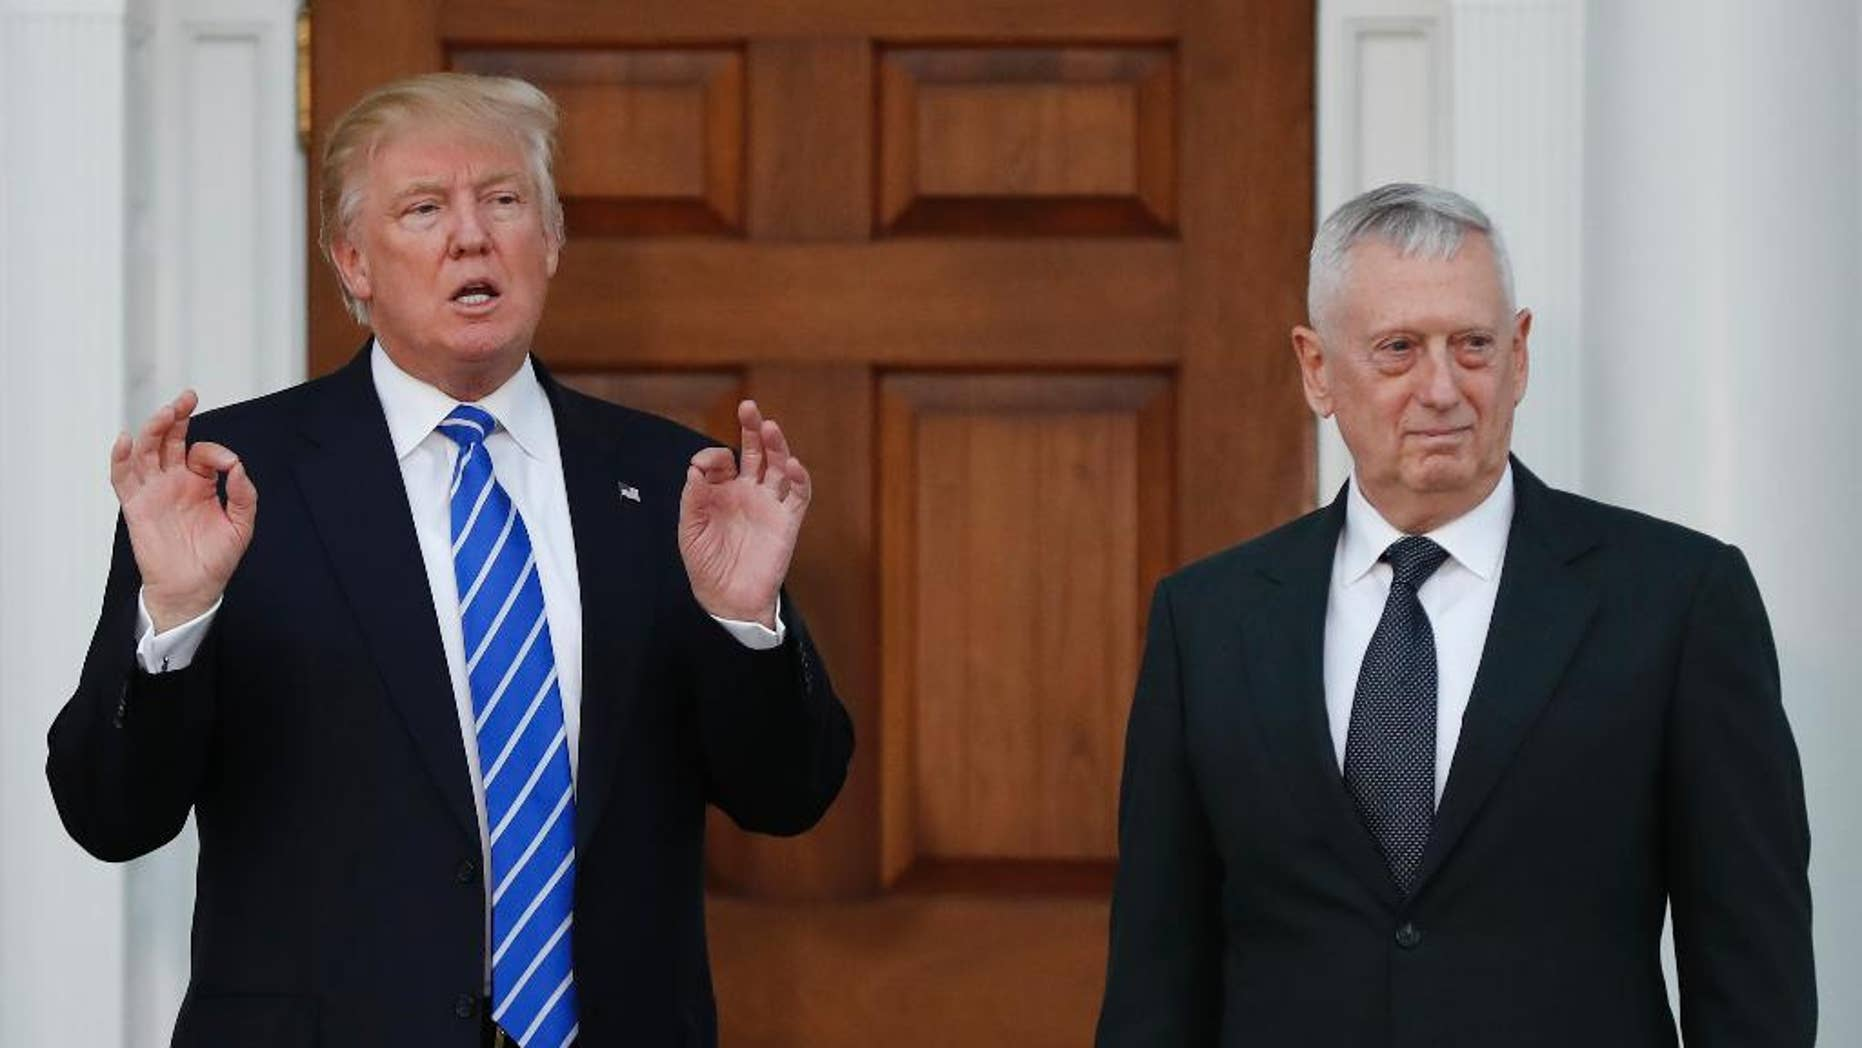 In this photo taken Nov. 19, 2016, Defense Secretary-designate James Mattis stands with President-elect Donald Trump in Bedminster, N.J. Senators signaled little opposition Tuesday, Jan. 10, 2017, to the nomination of Mattis, as national security experts recommended lawmakers amend the law and allow the retired Marine Corps general to head the Pentagon for President-elect Donald Trump. (AP Photo/Carolyn Kaster)